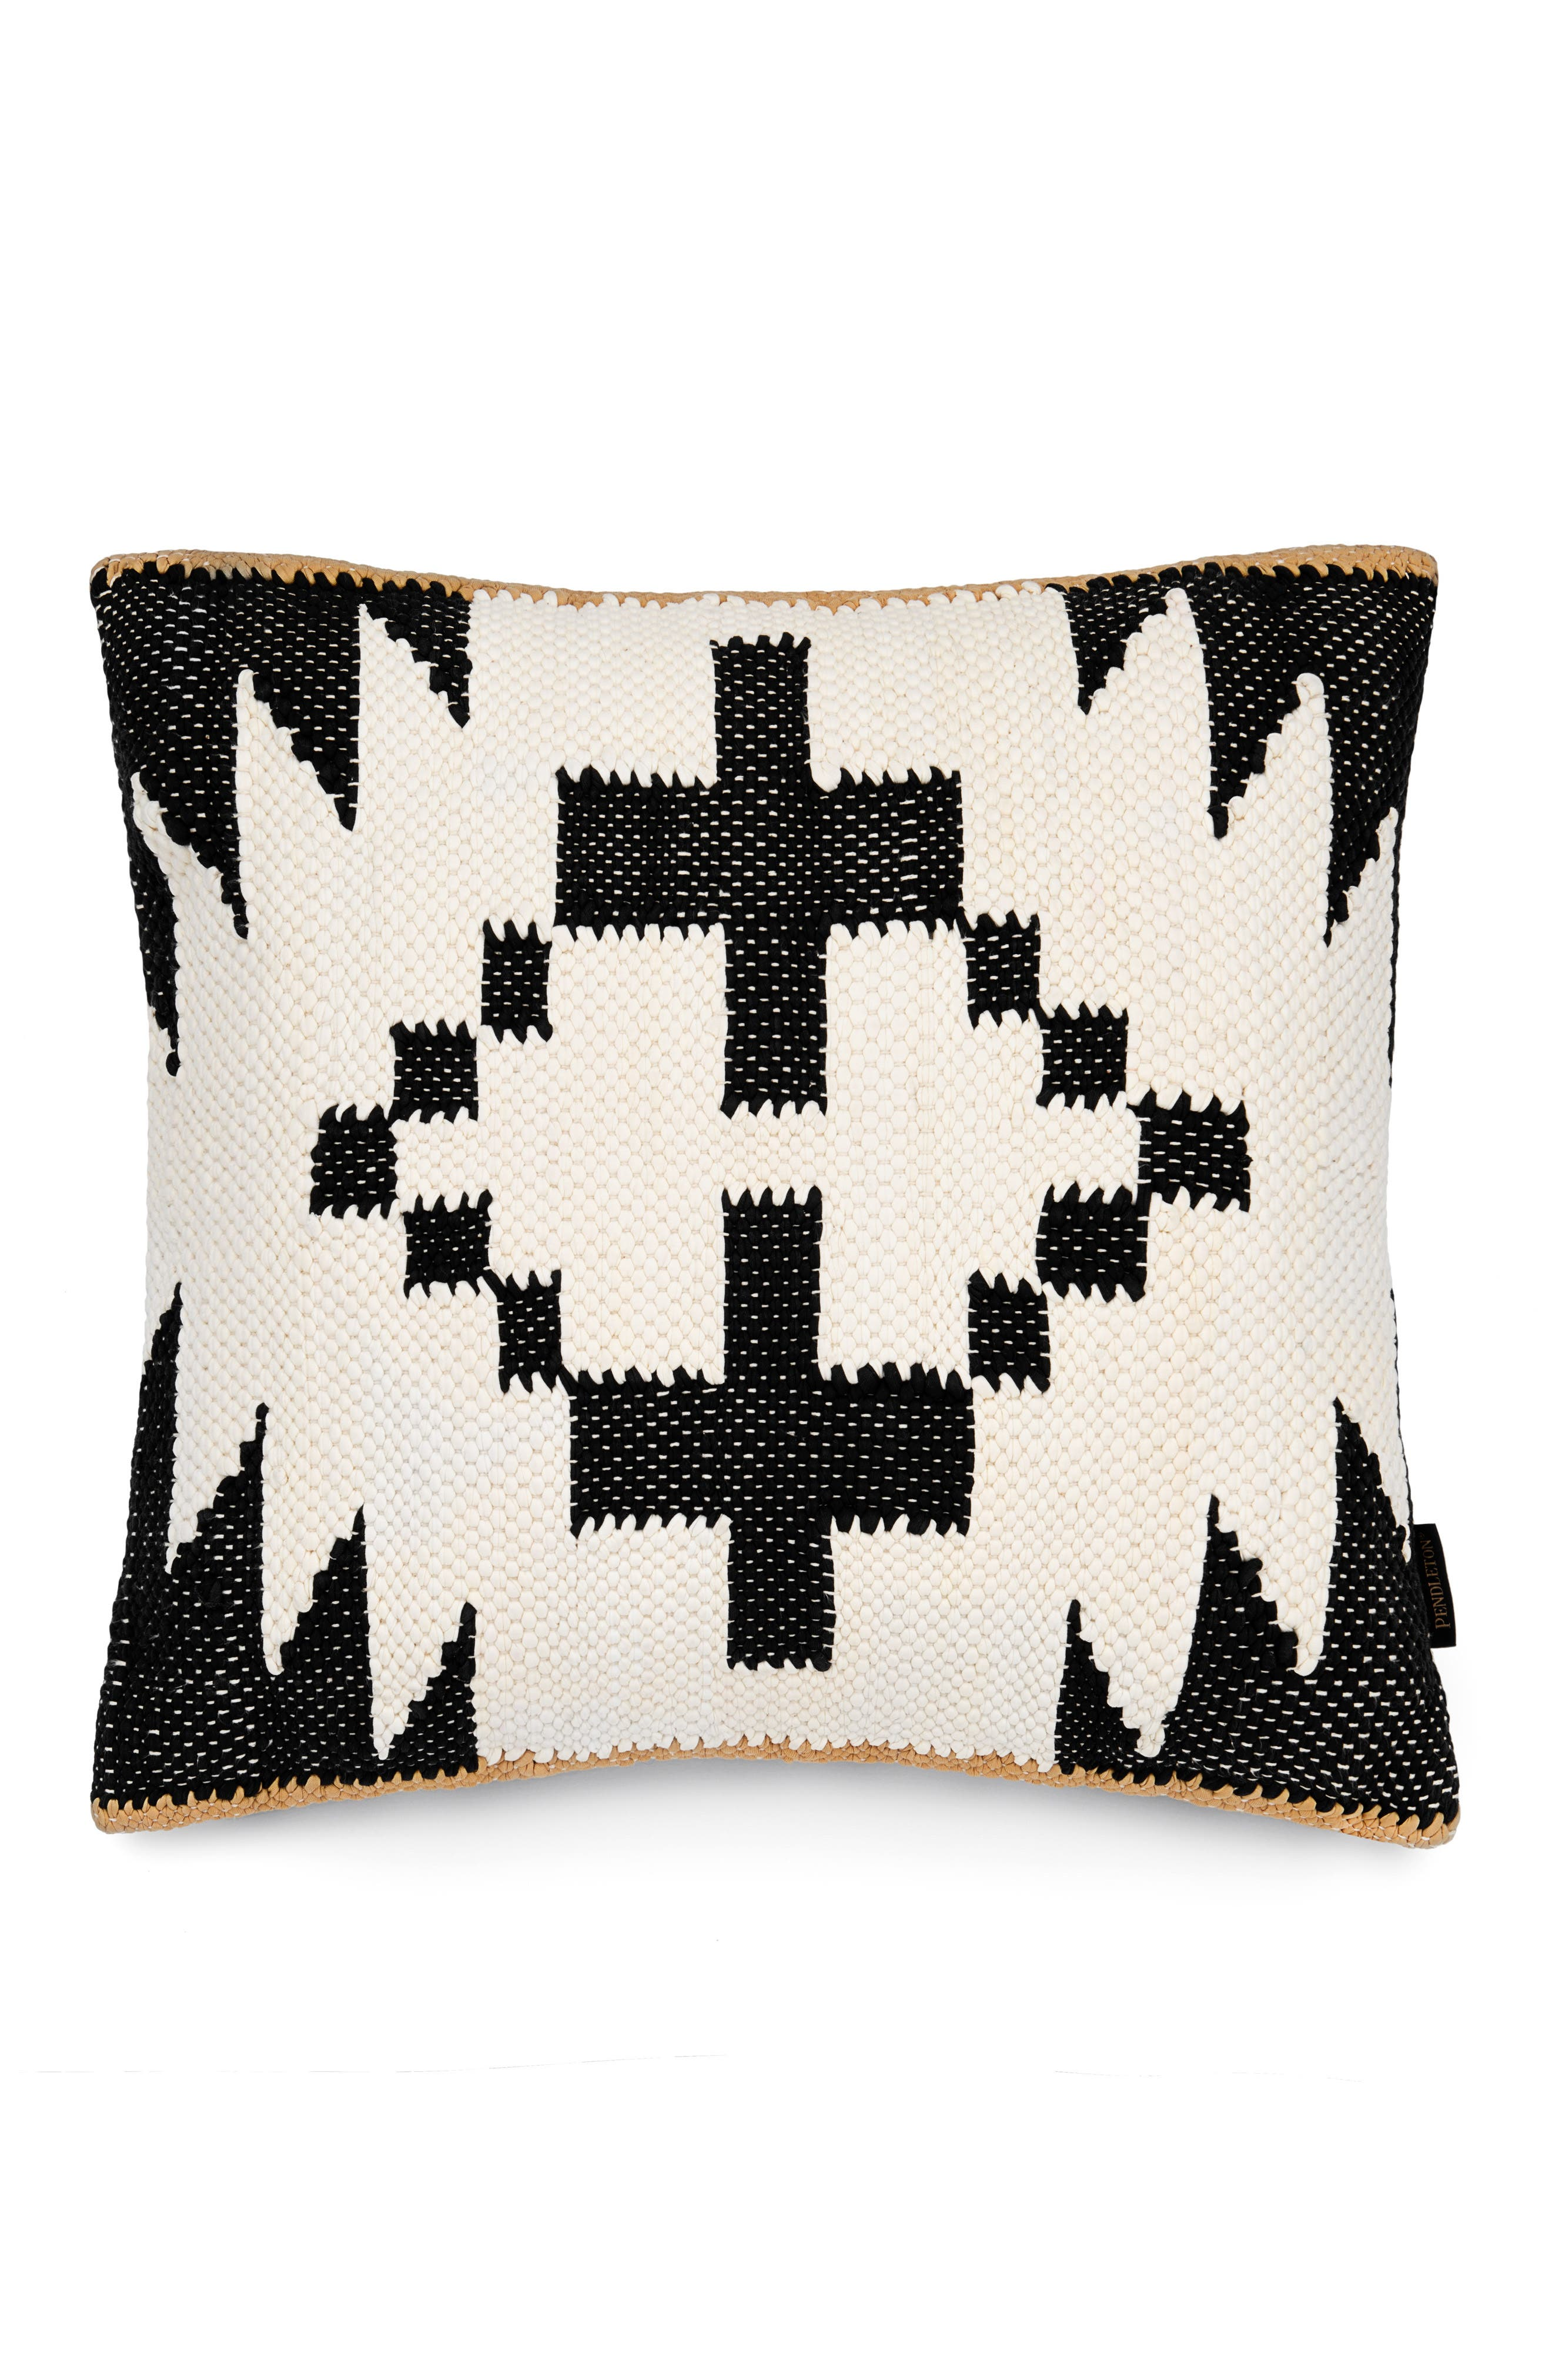 Spider Rock Chindi Oversize Accent Pillow,                         Main,                         color, Spider Rock Black